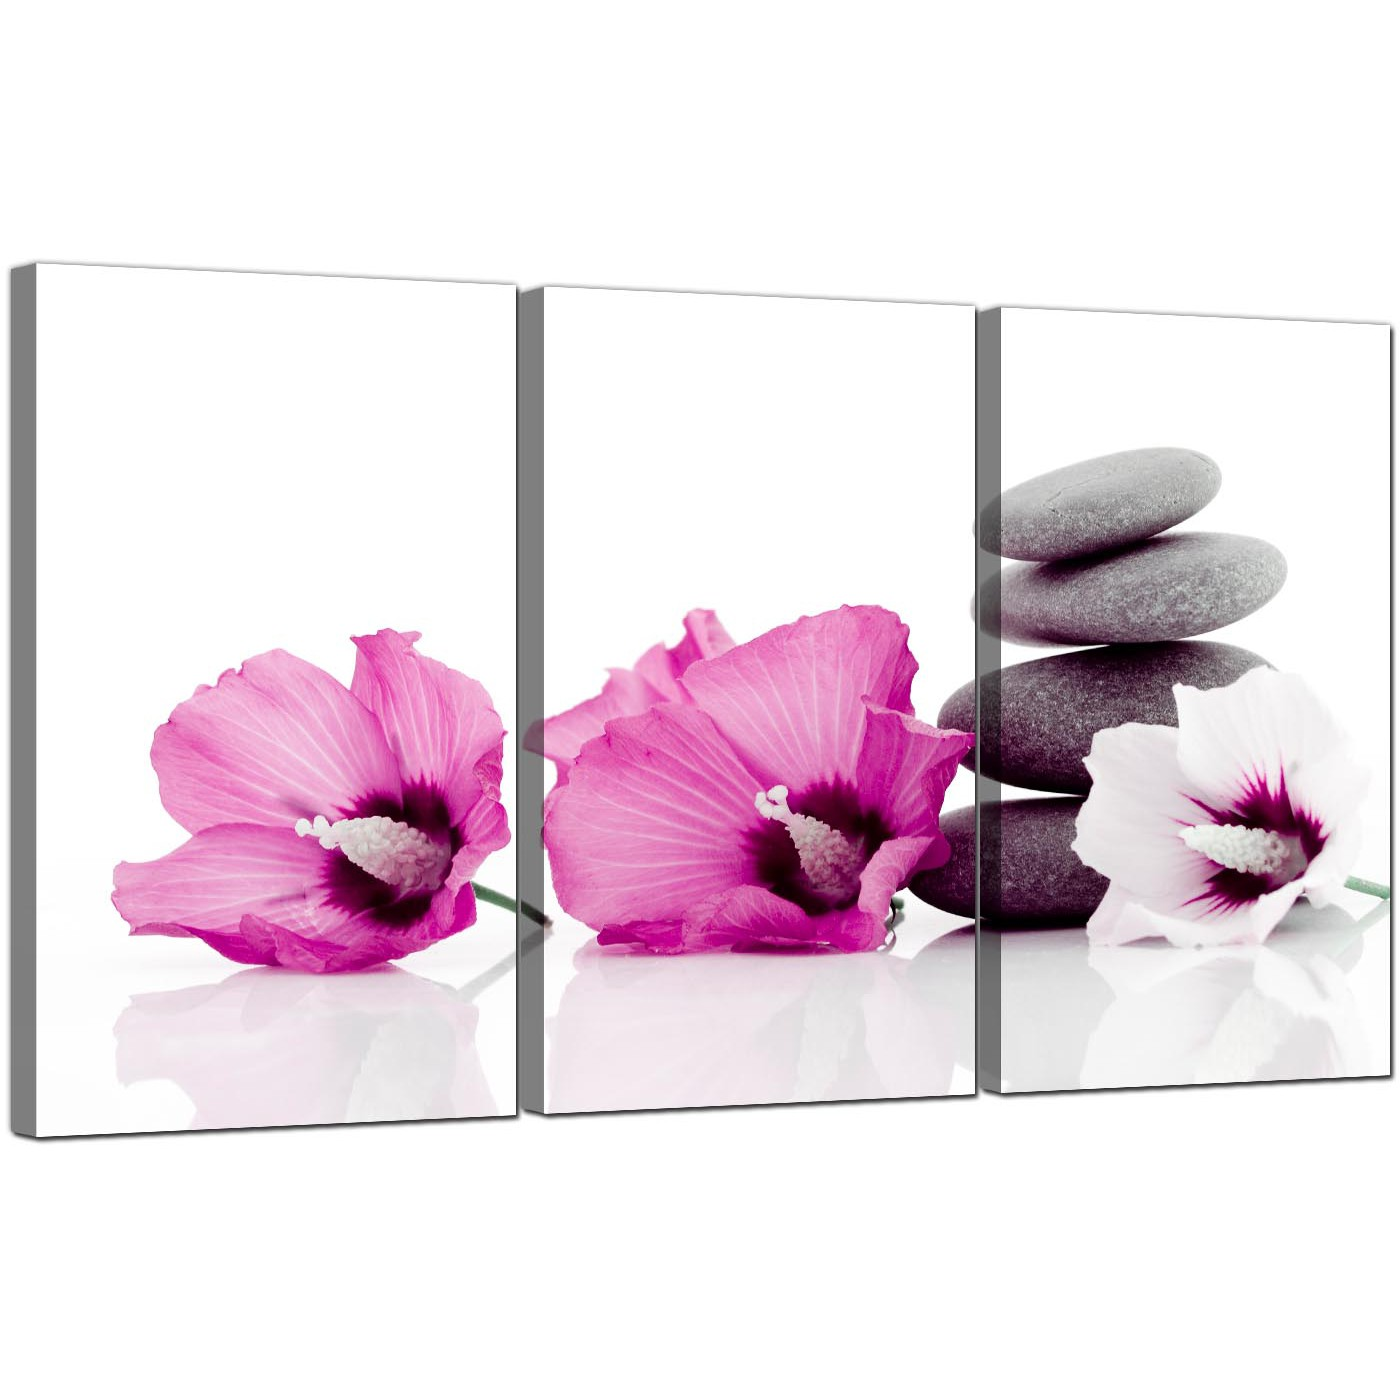 Display Gallery Item 5; 3 Panel Floral Canvas Art Hibiscus 3069 Display  Gallery Item 6